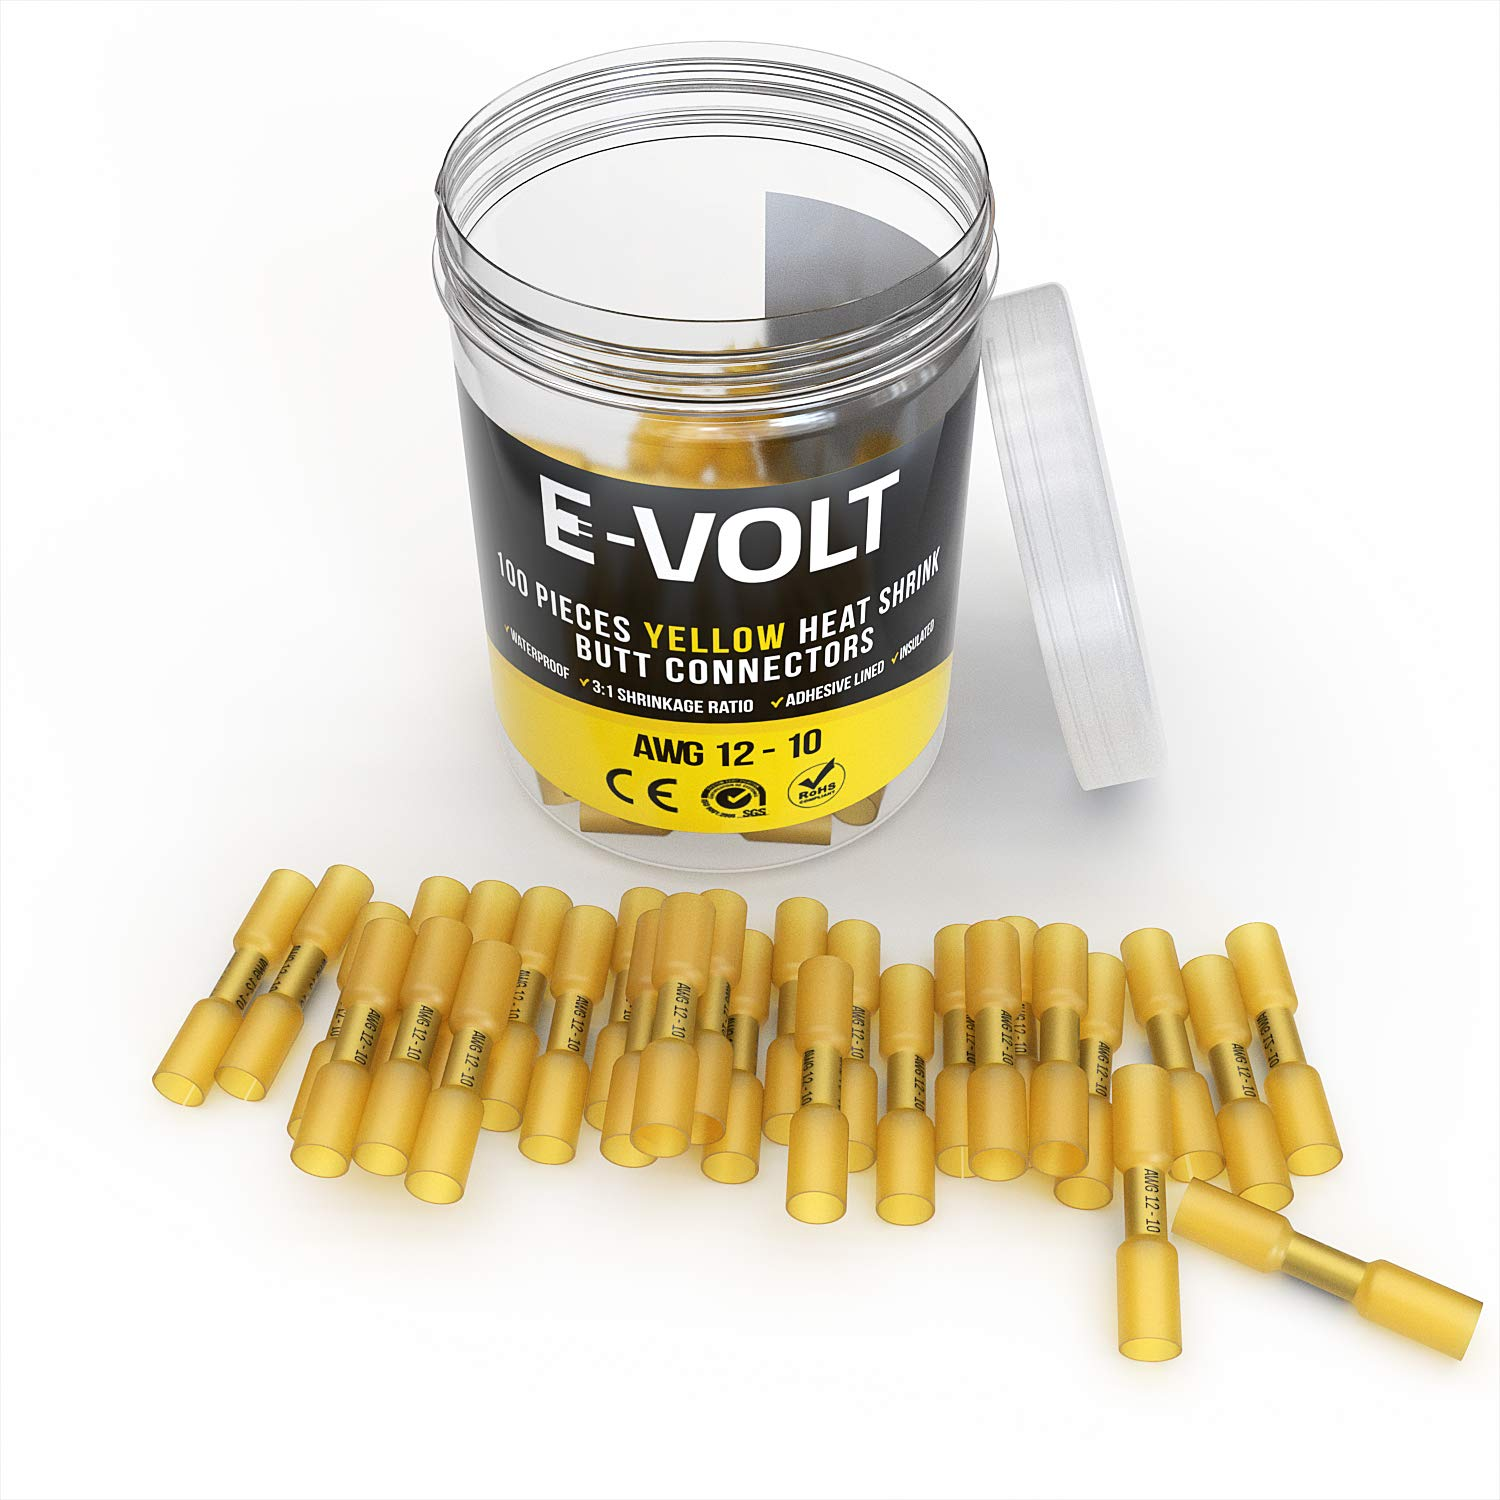 100 Pc Yellow Heat Shrink Butt Crimp Connectors 12 10 Gauge Bulk Wiring Terminals Automotive Waterproof Electrical